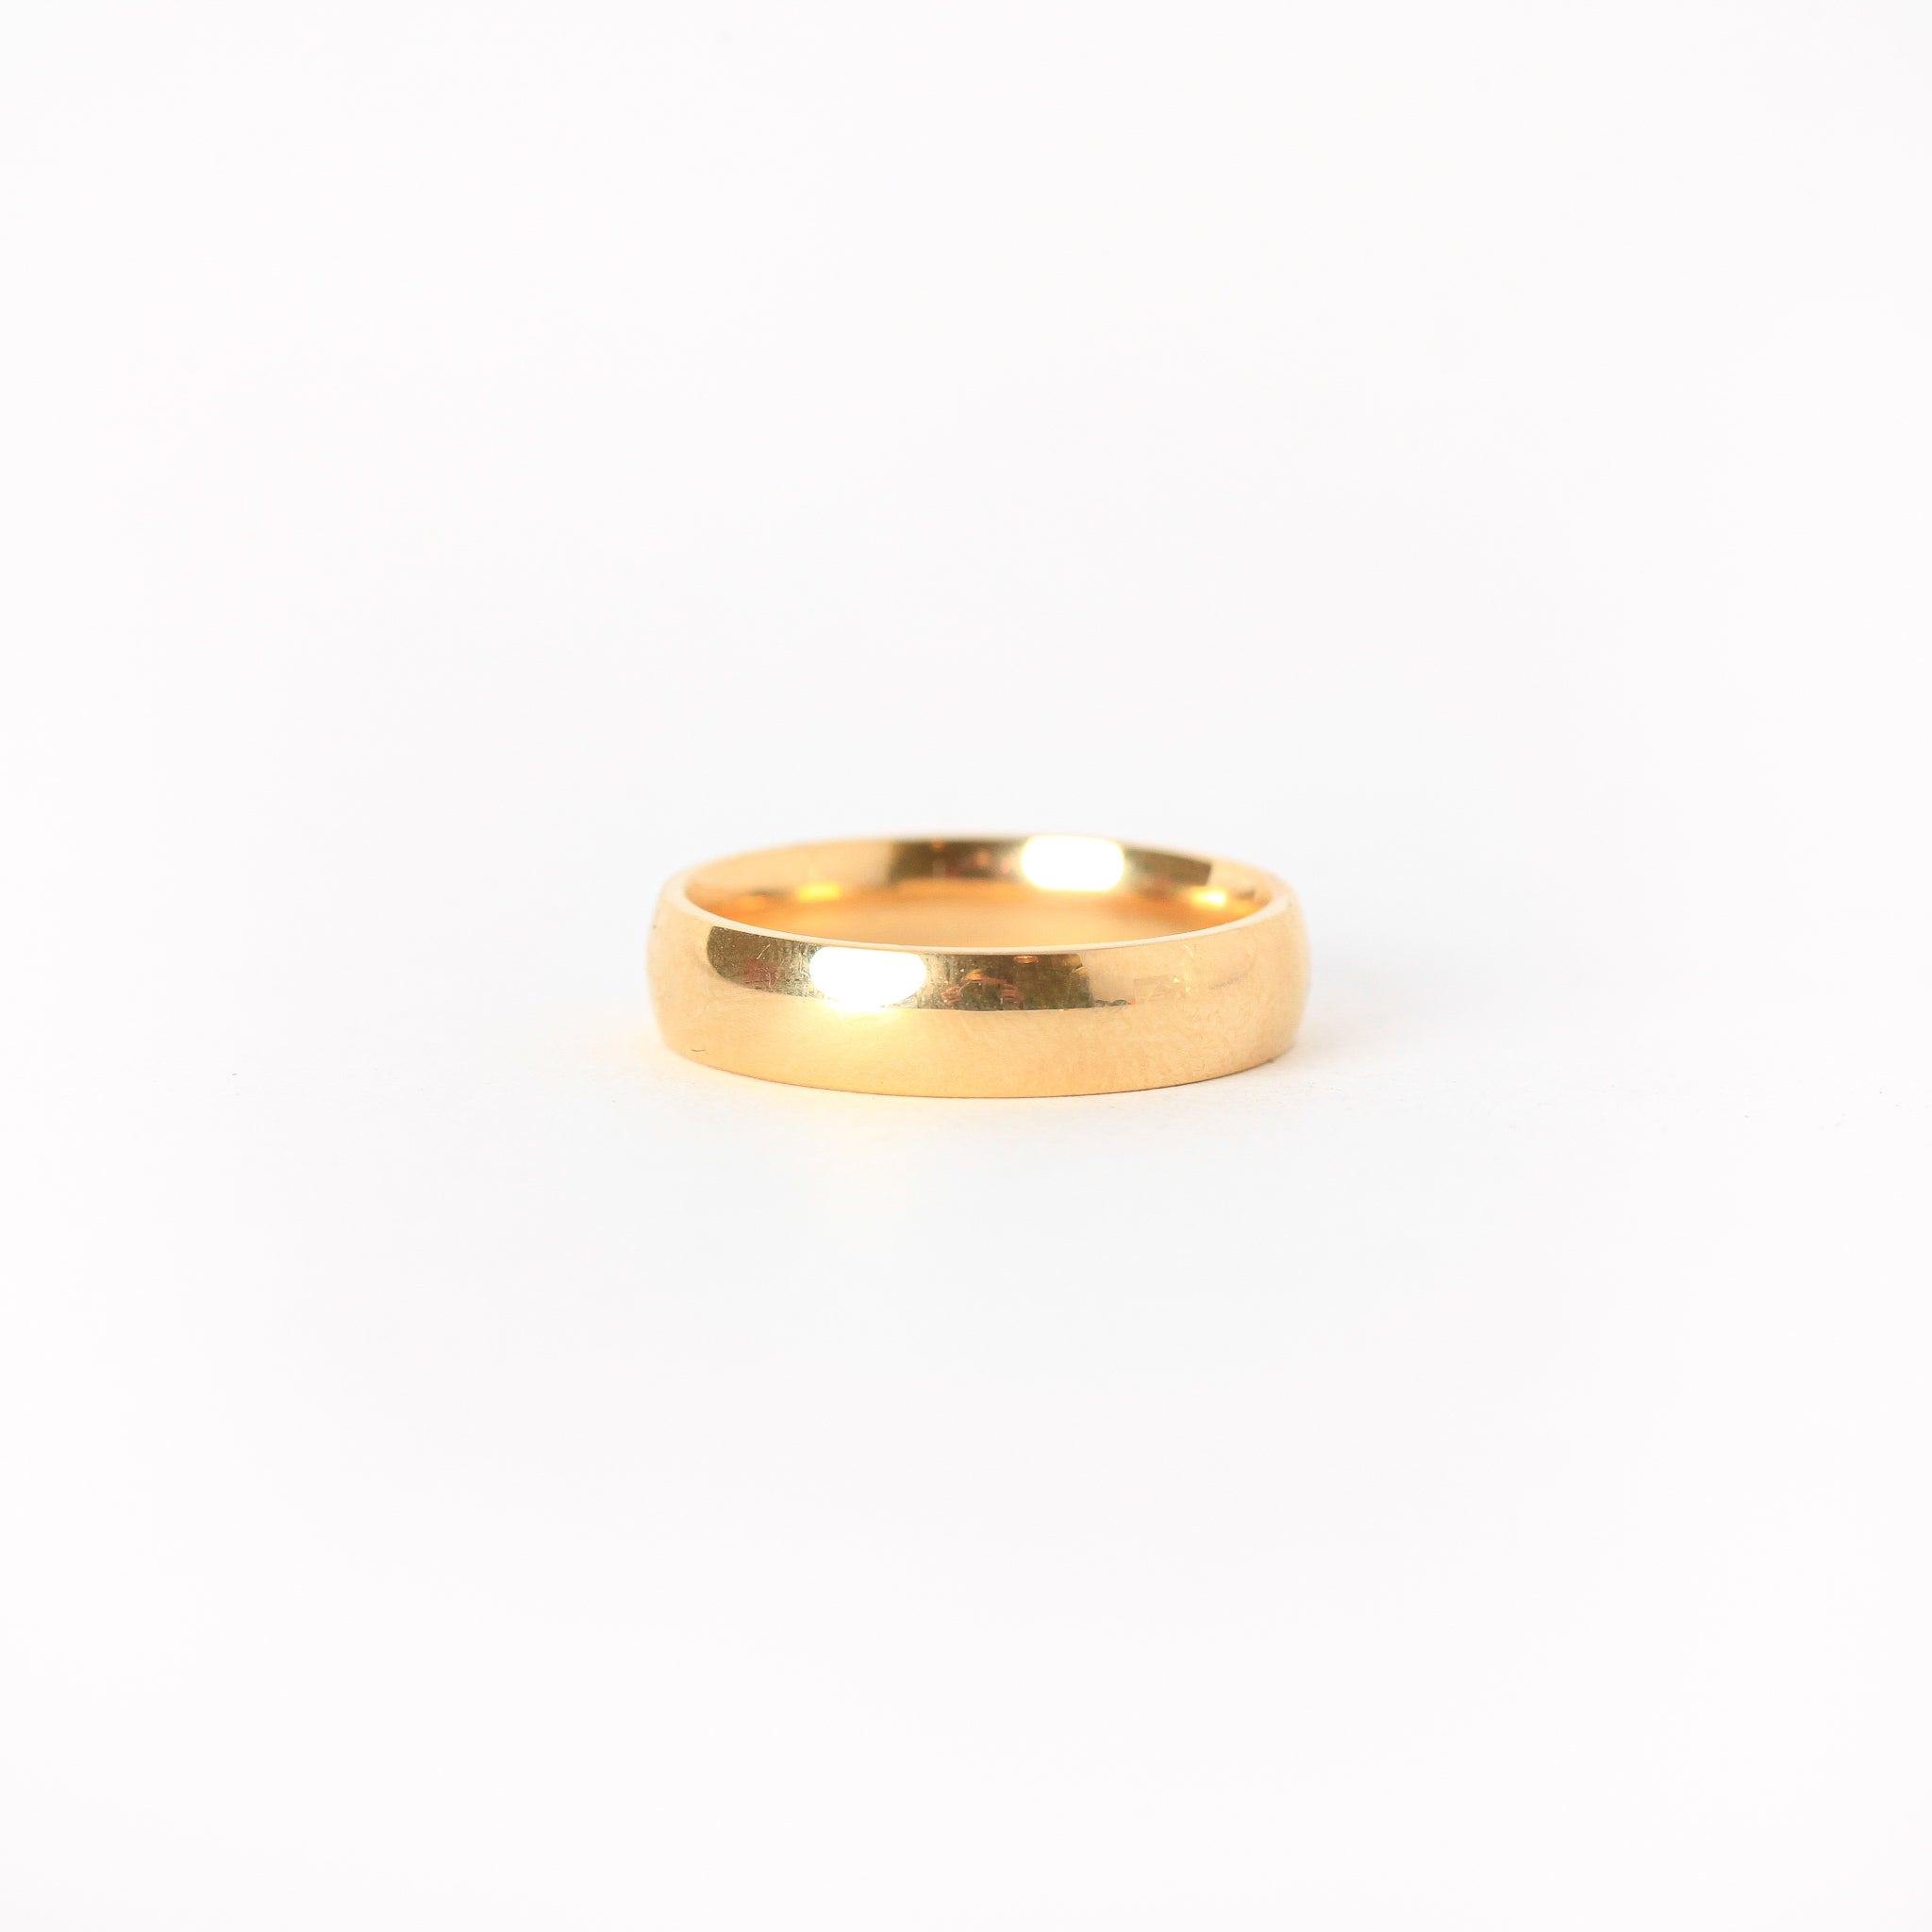 Handmade 18ct Yellow Gold Wedding Band